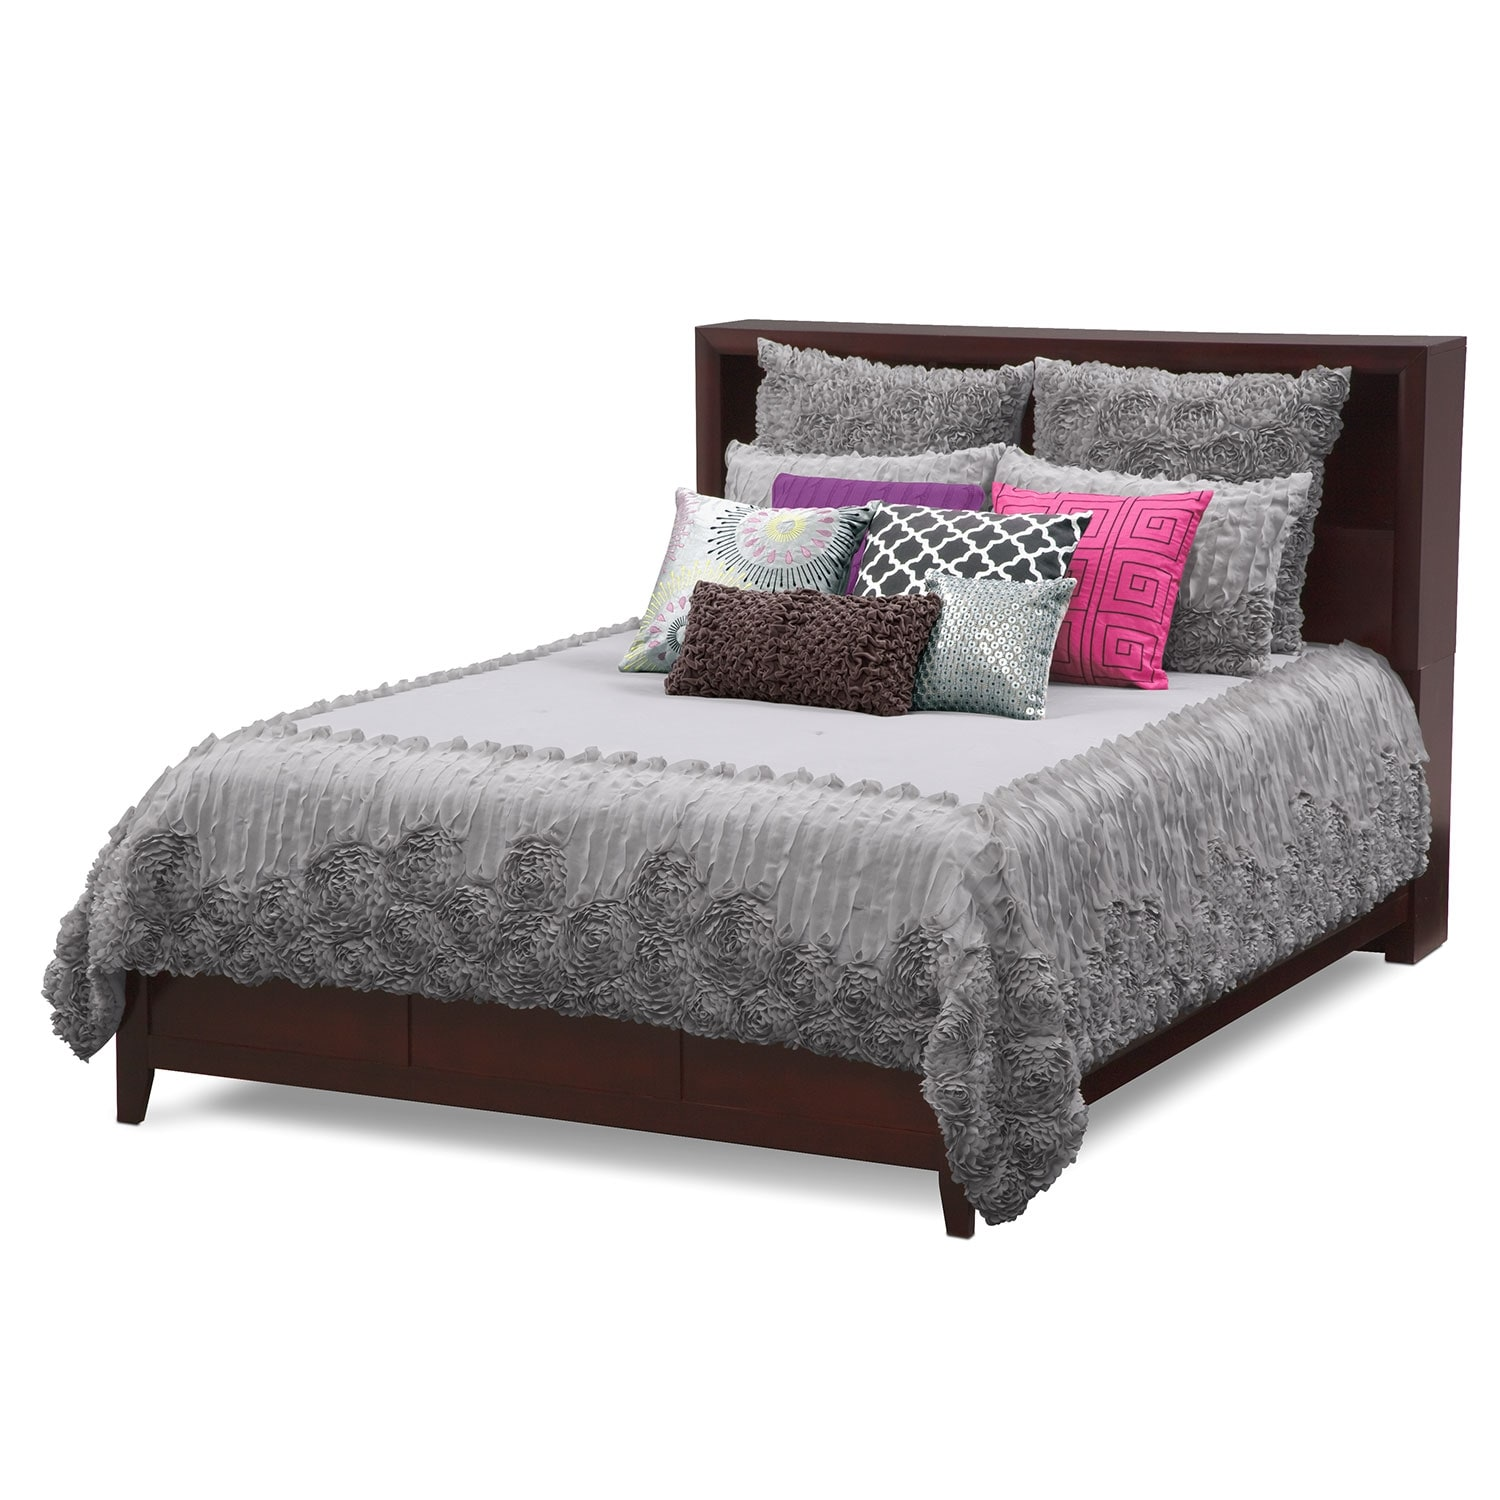 Sweet Georgia II King Bedding Set